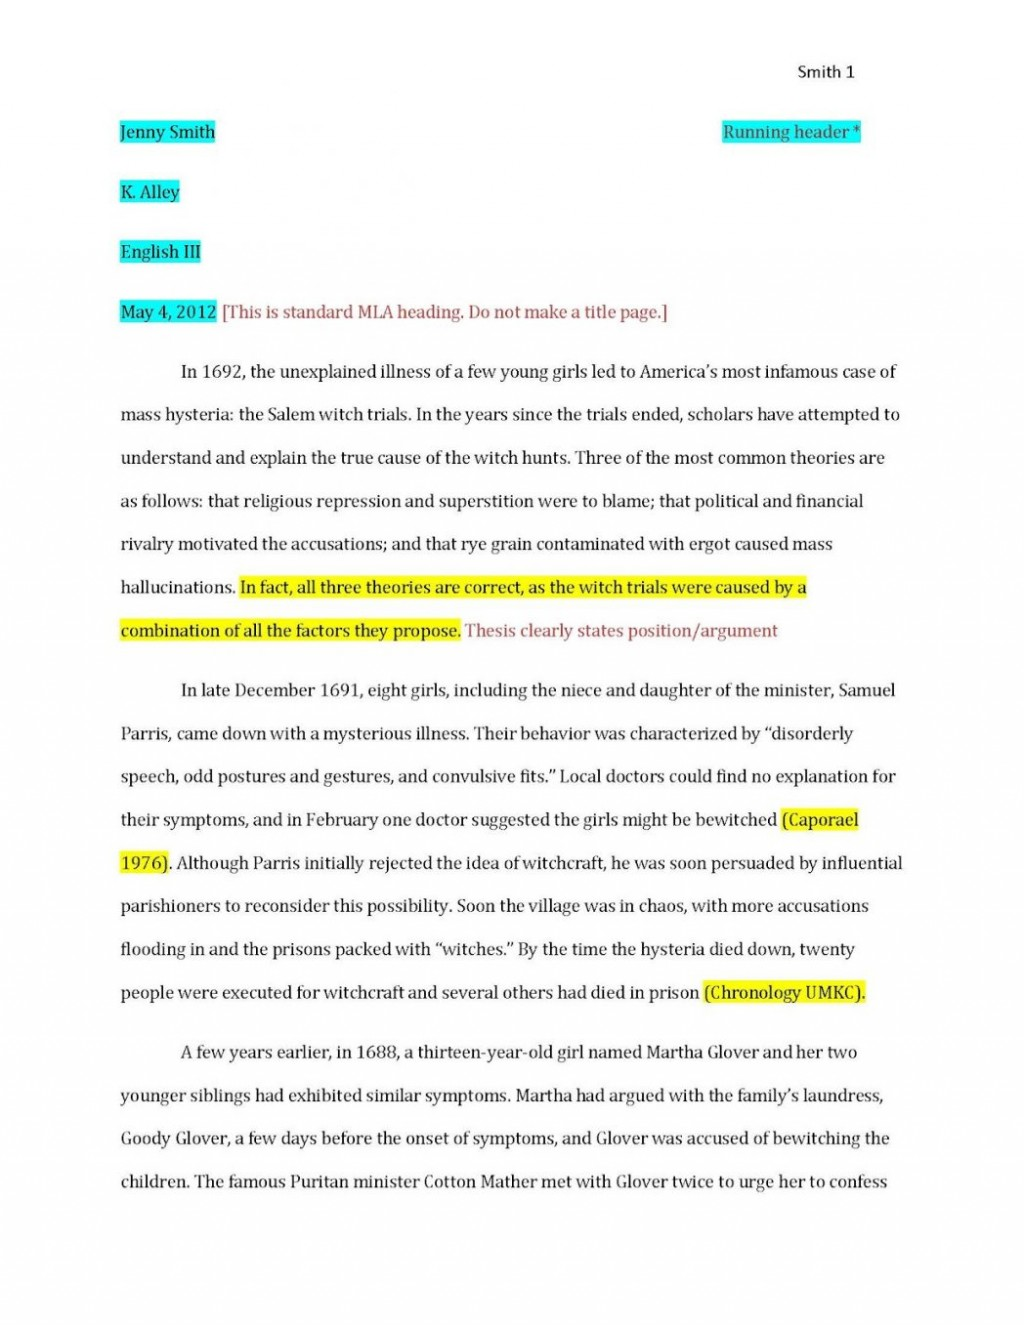 002 Mla Format Essay Generator Author Date References System Ready Set Automaticpaper P 1048x1357 Wondrous Paper Software Download Title Reddit Free Large